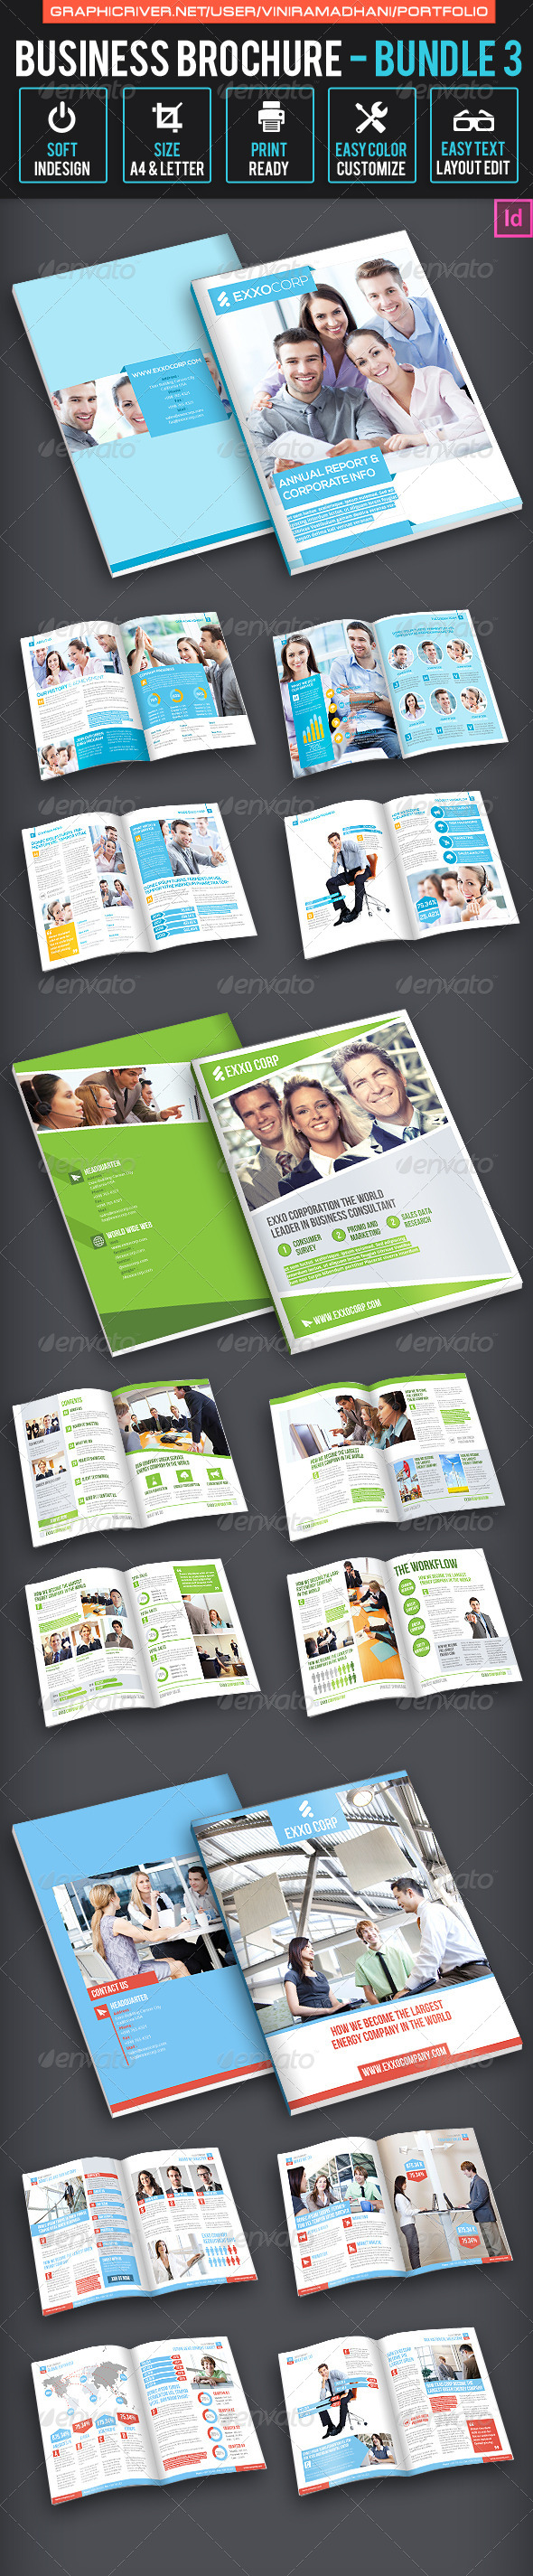 GraphicRiver Business Brochure bundle 3 7324605